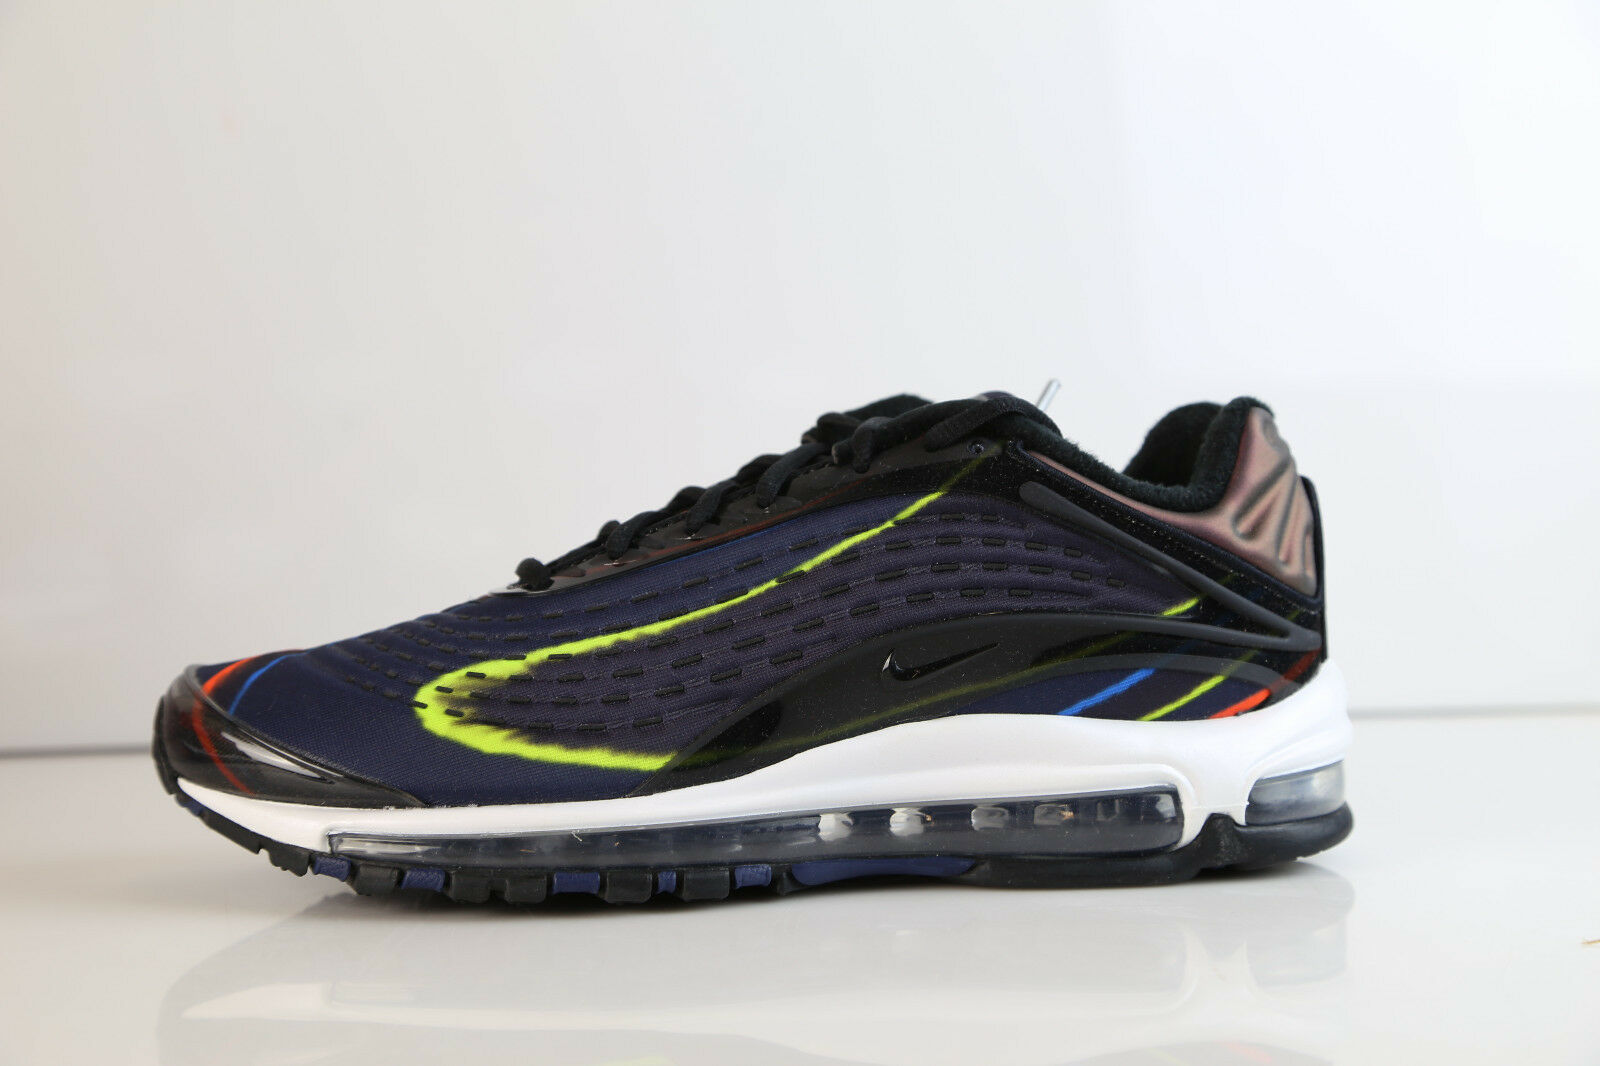 Nike Air Max Deluxe Black Midnight Navy AJ7831-001 8-13 1 delux sk